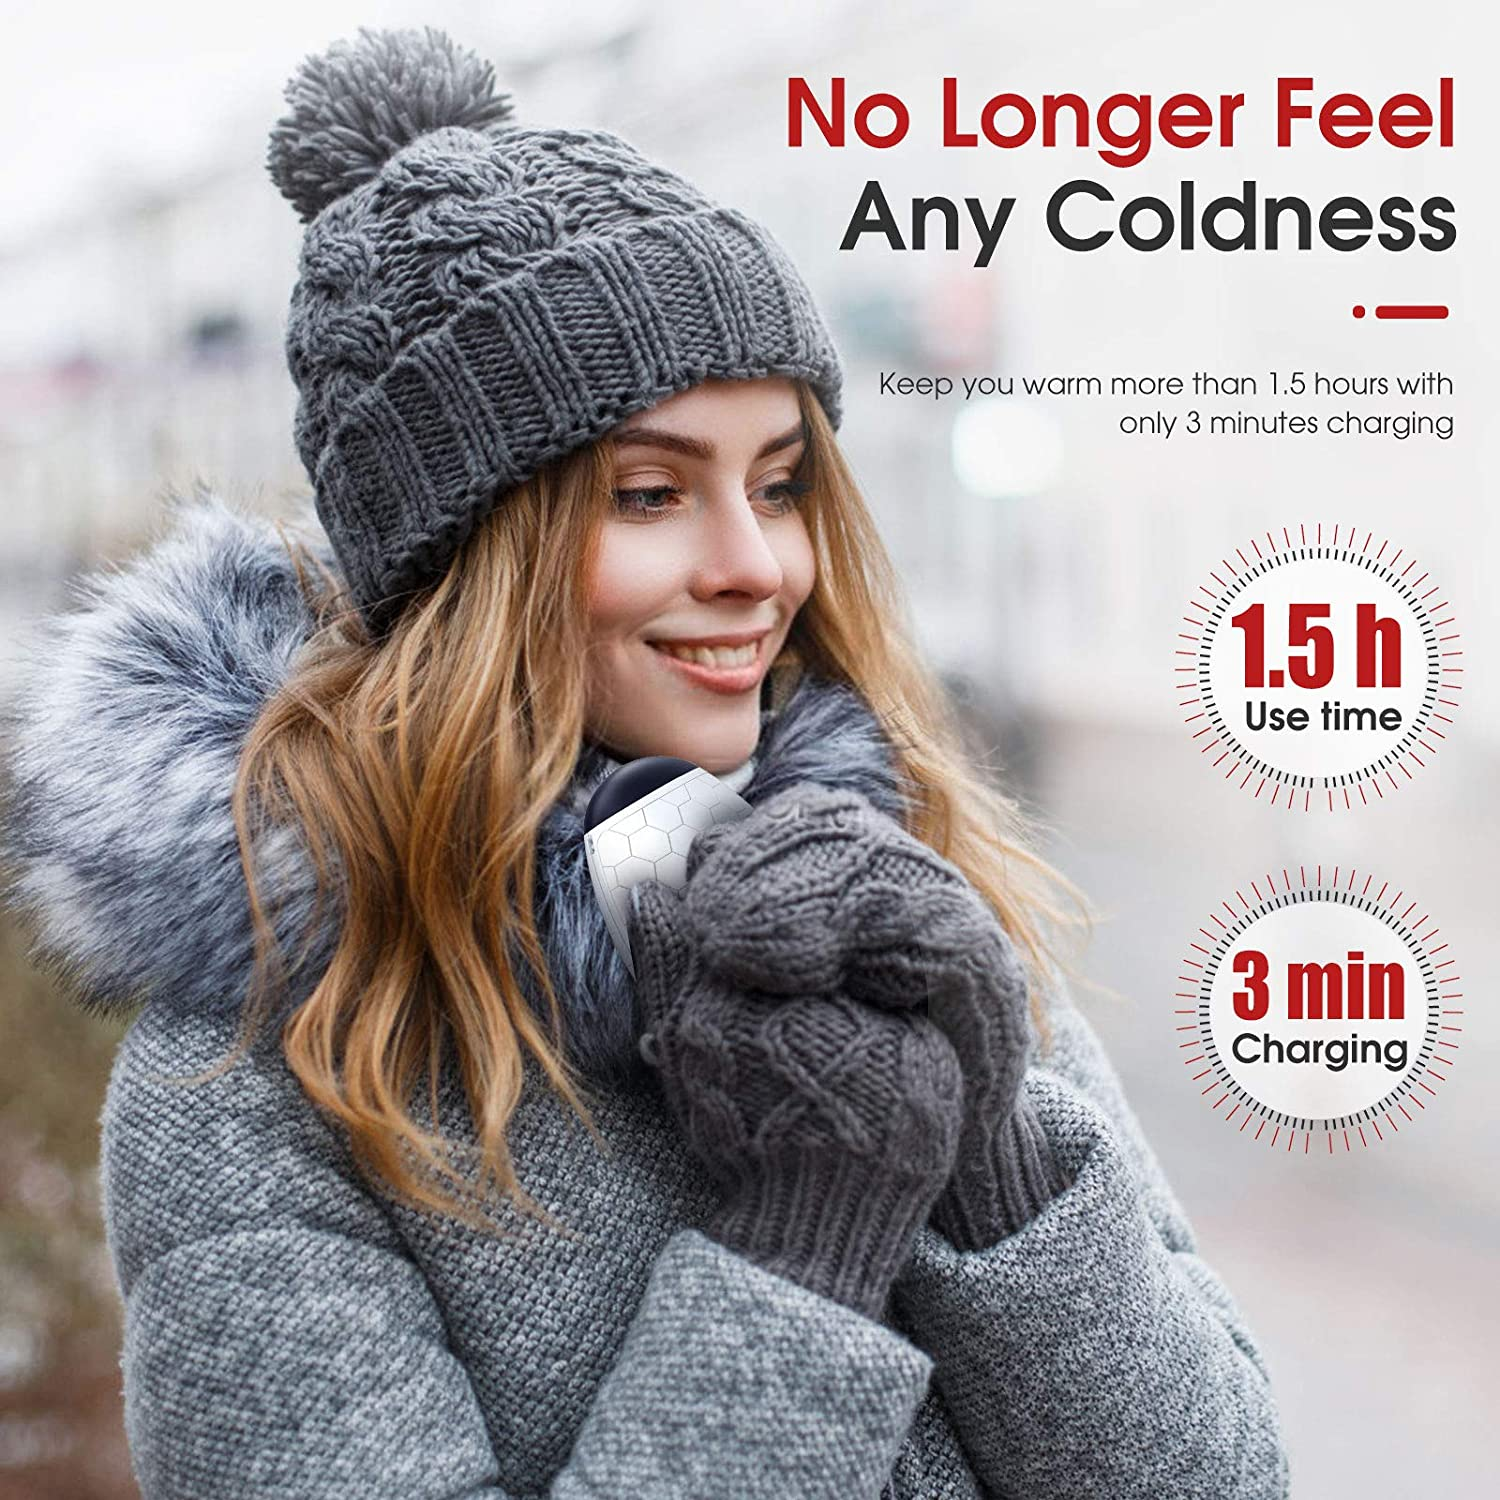 Camping Hand Warmers Rechargeable Quick Heating Portable Warmer for Outdoor Sports 3 Minutes Fast Charging Hunting 2020 Upgraded Electric Hand Warmer Reusable Warm Gifts for Girls Women Men